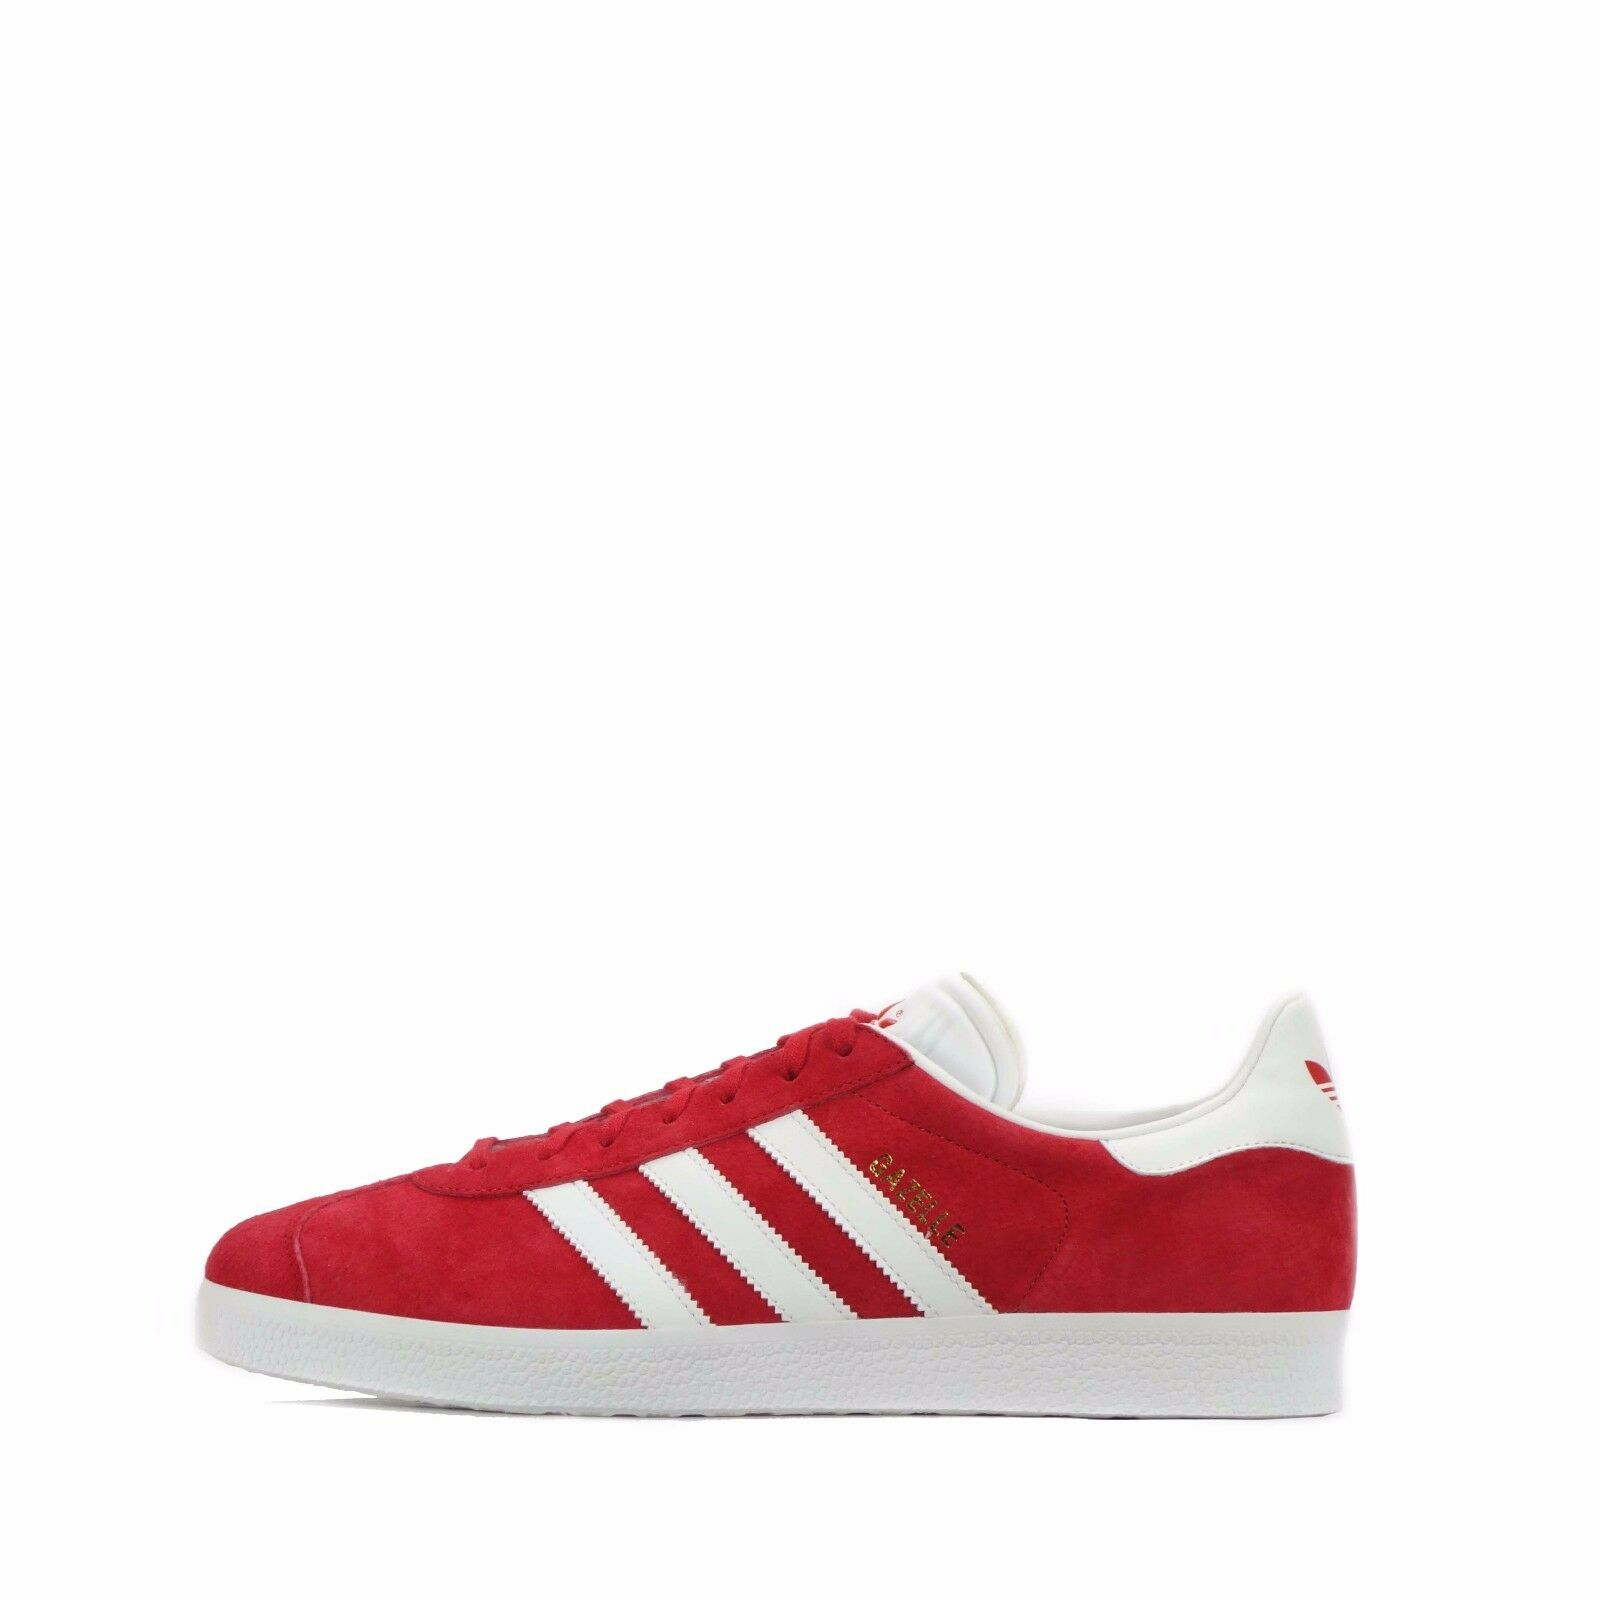 adidas Originals Gazelle Men's Shoes Red/White